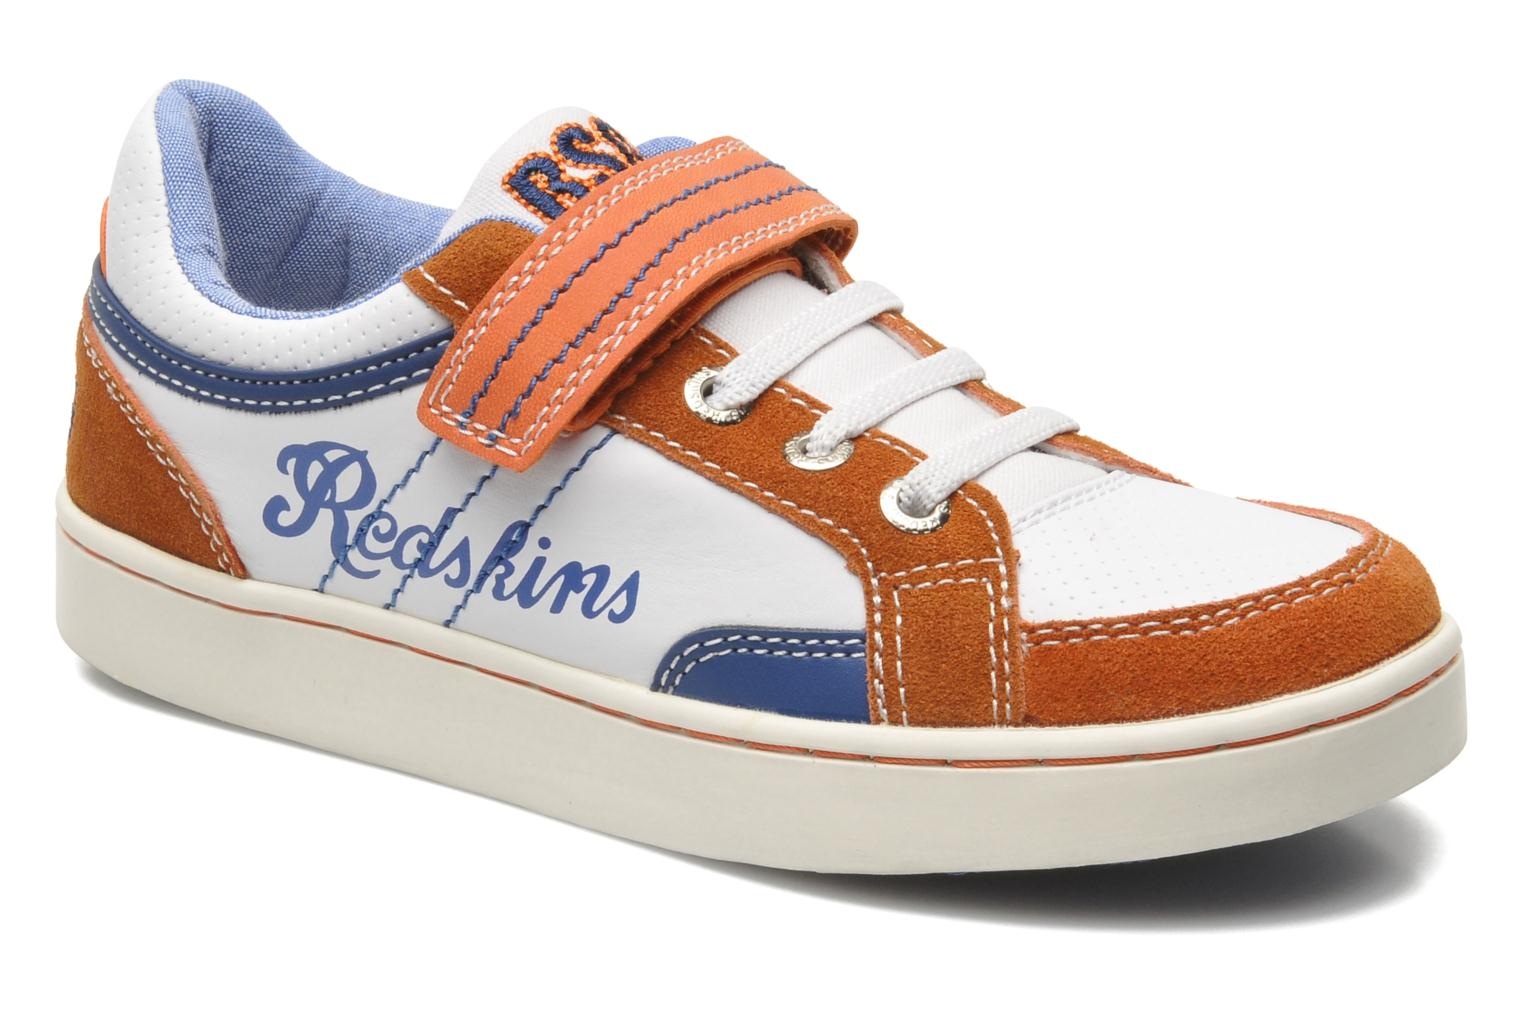 Sneakers Zoulou Kids by Redskins